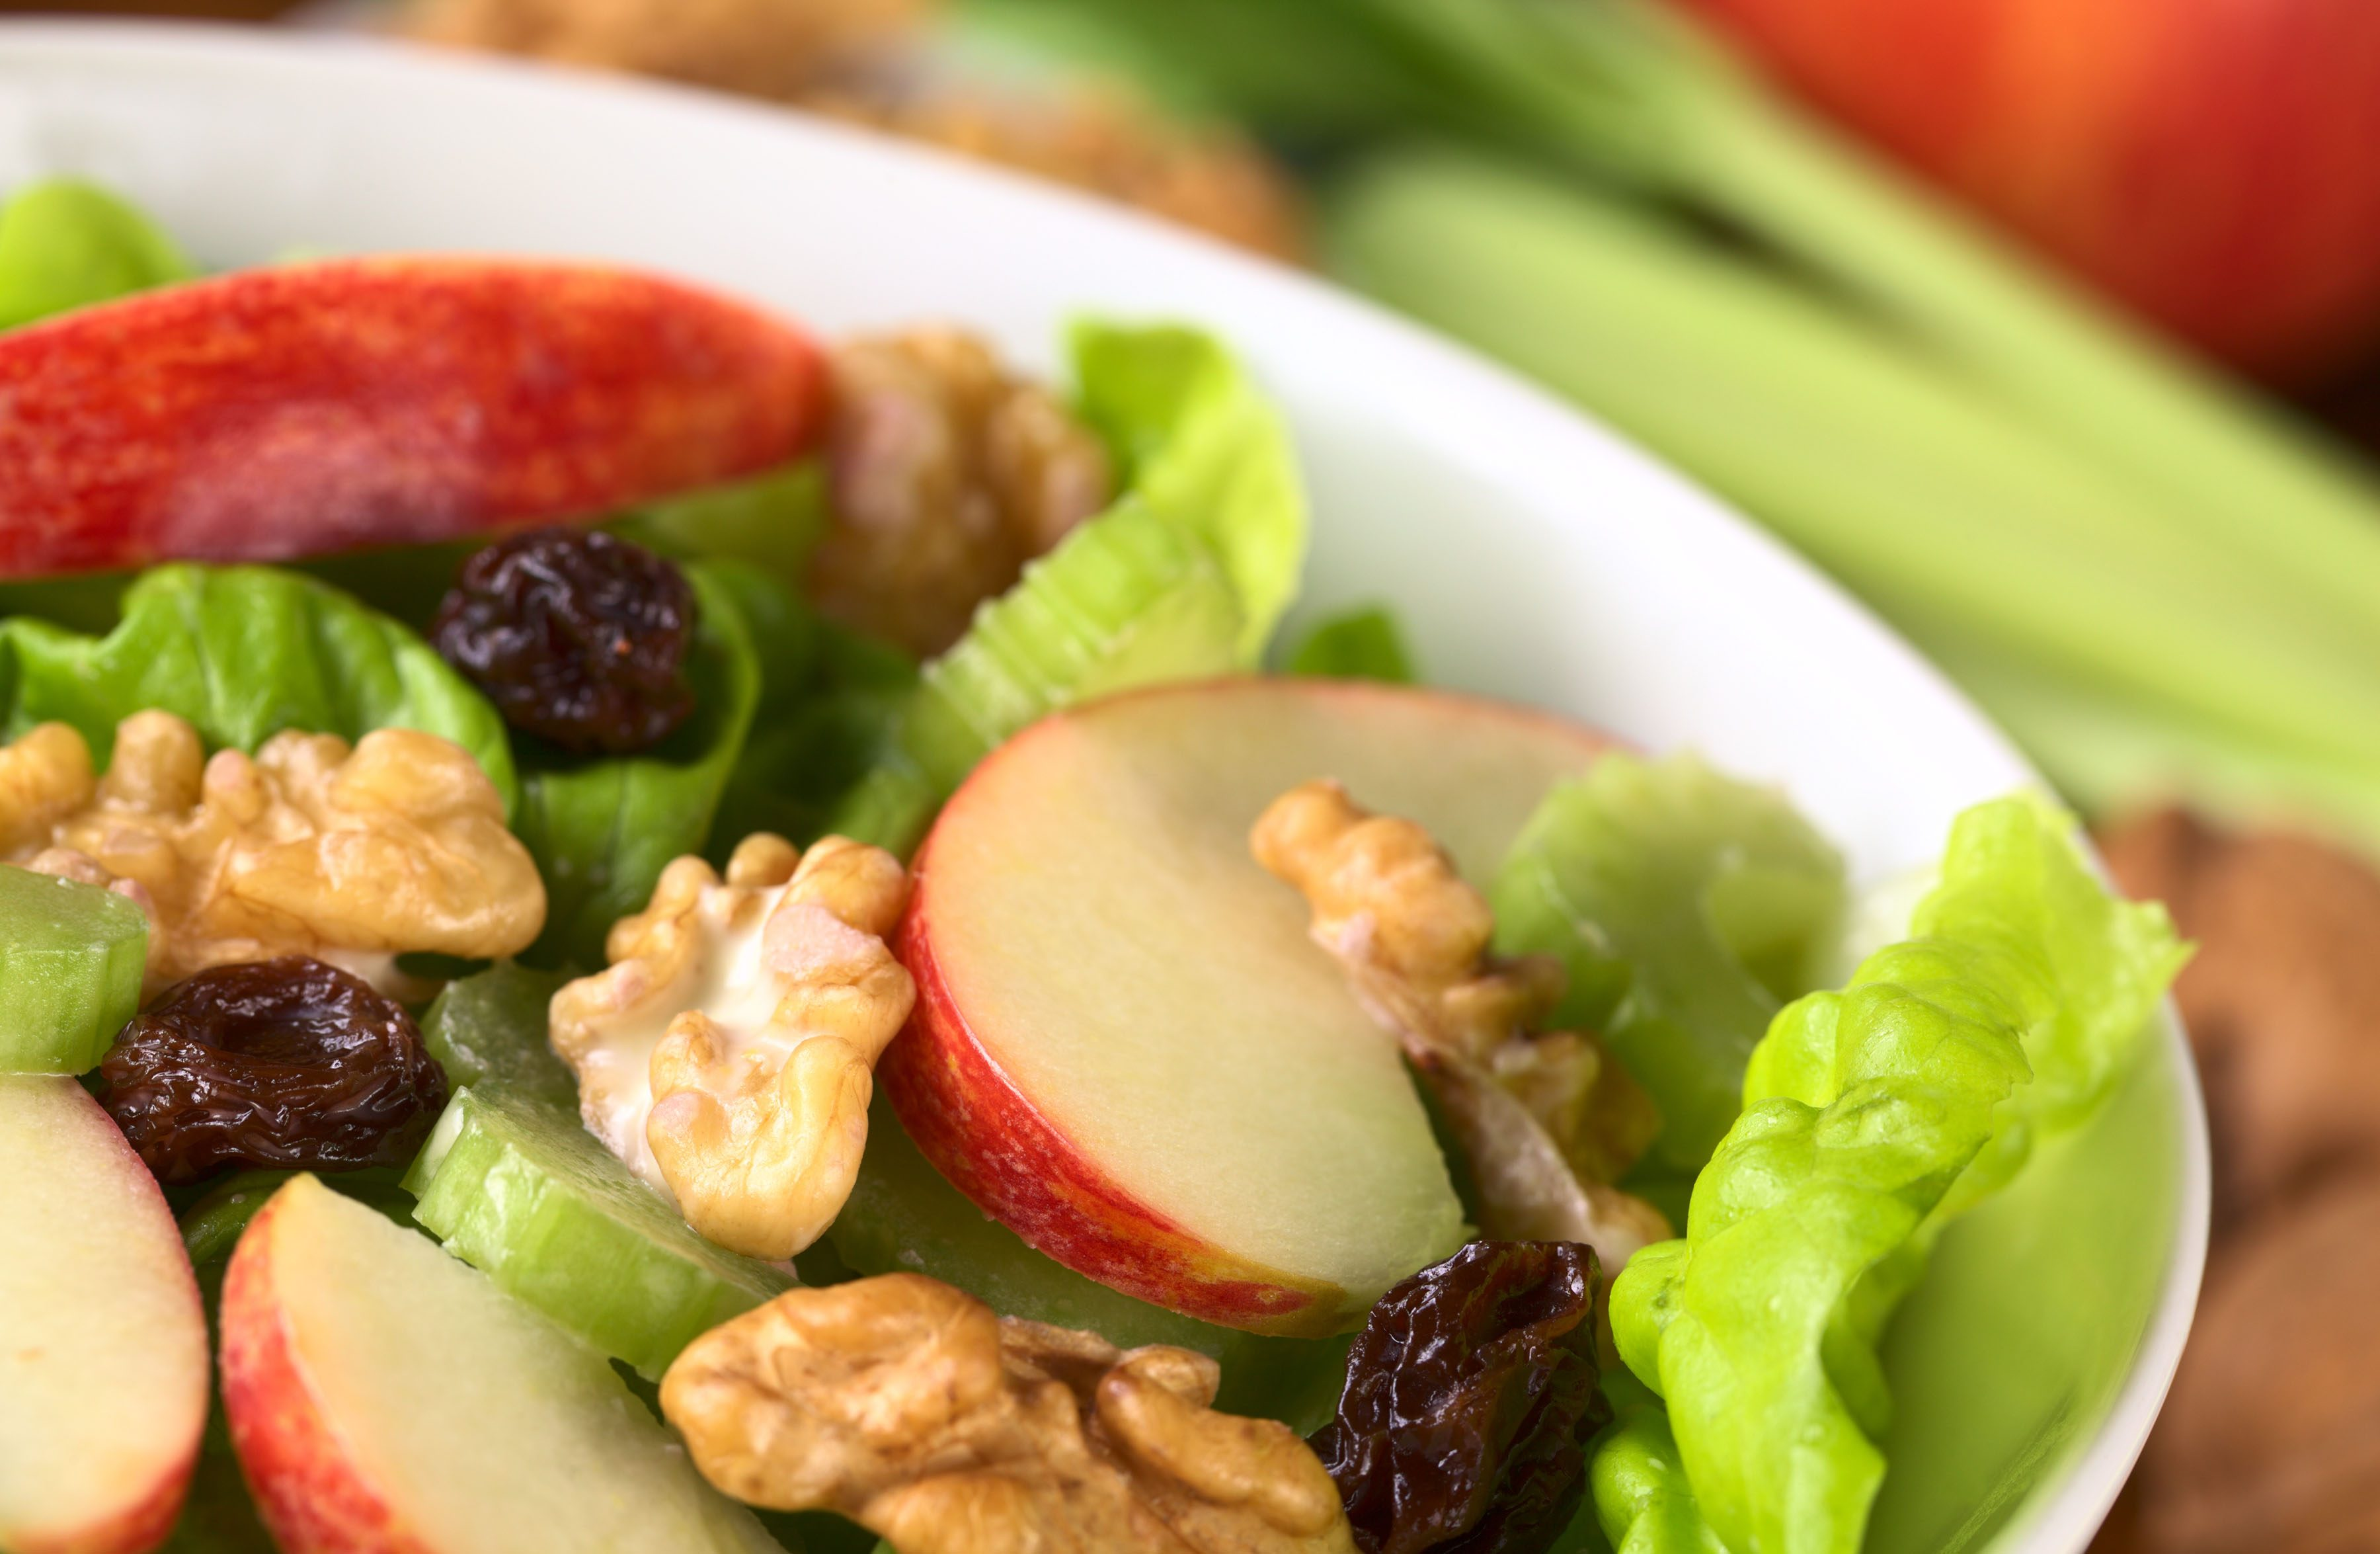 Apple and Cheddar Salad with Maple Dressing and Candied Walnuts